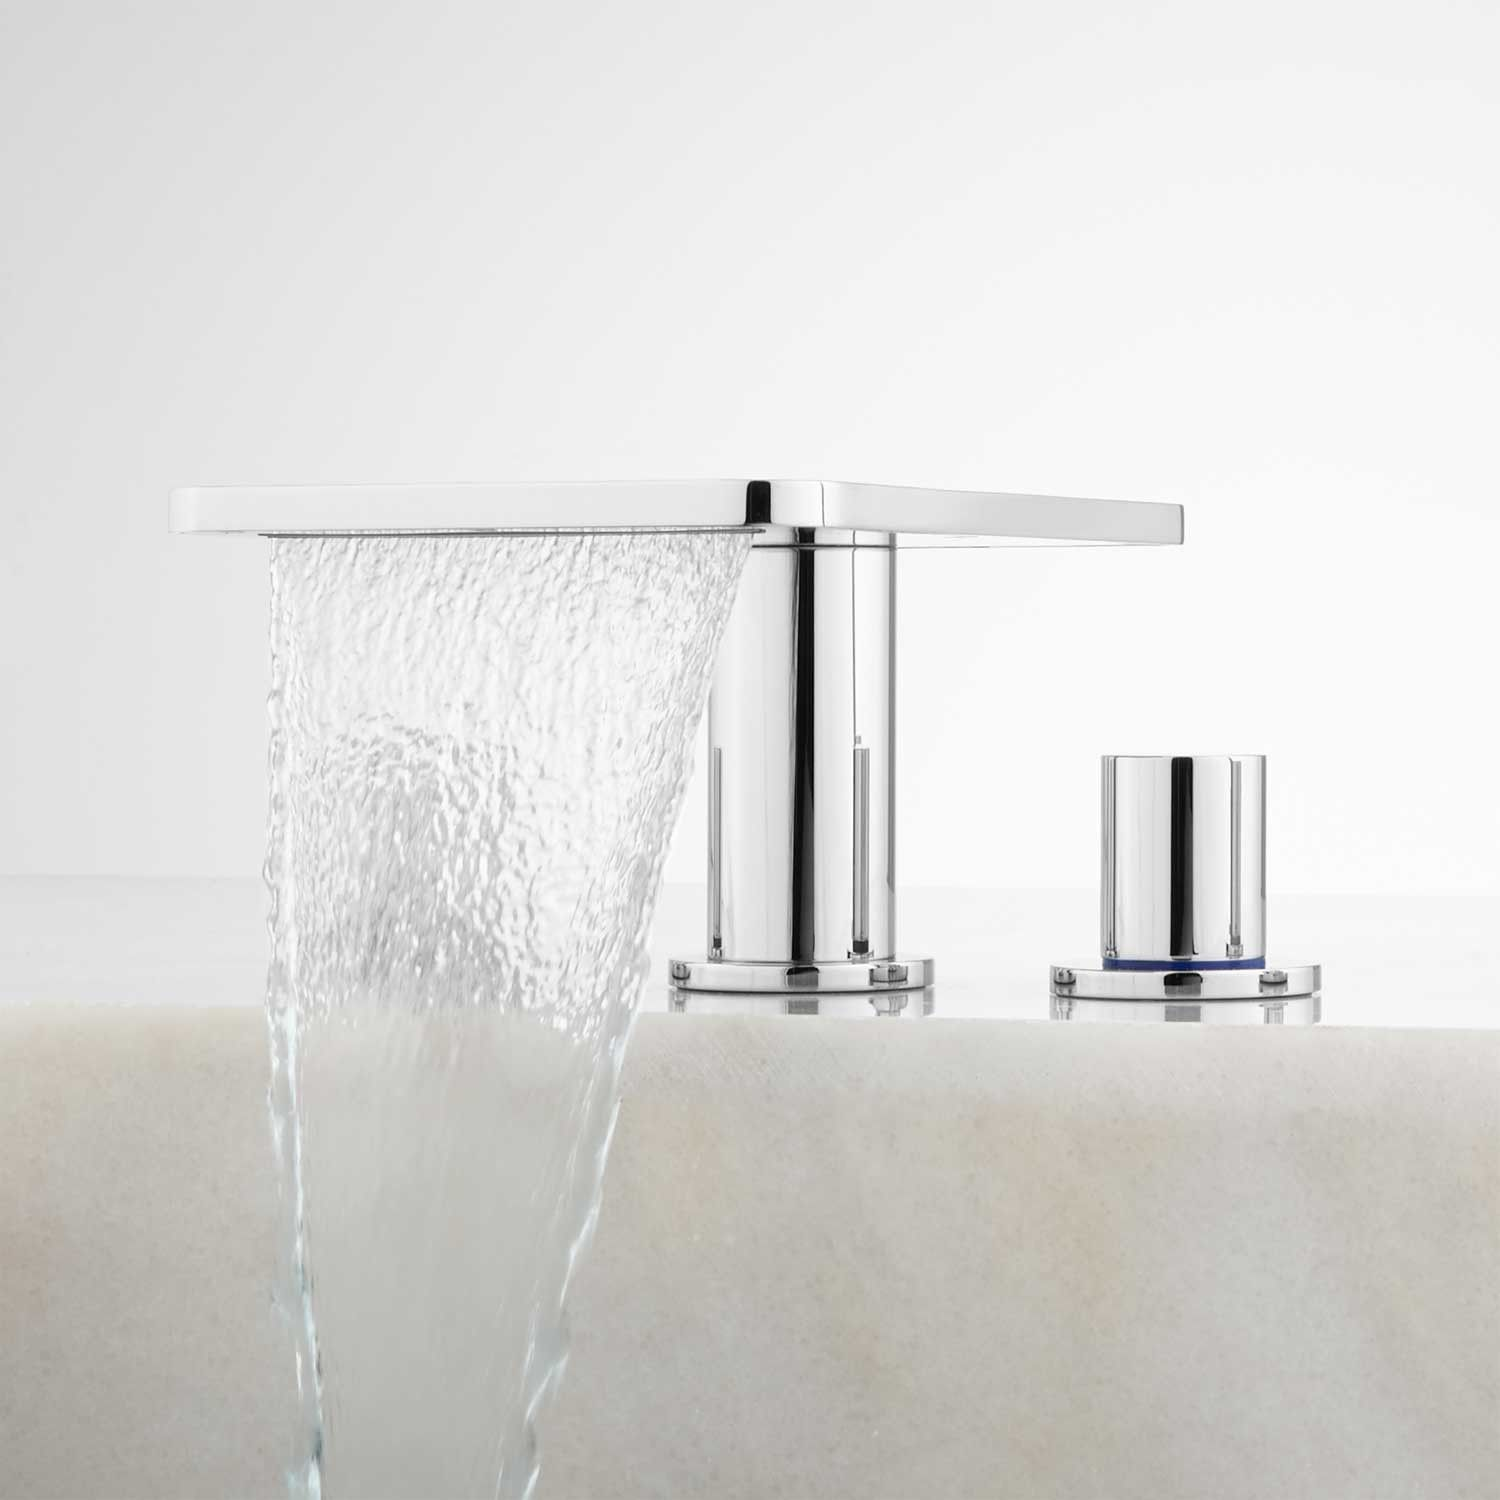 Knox Roman Waterfall Tub Faucet | Faucet, Tubs and Master bathrooms